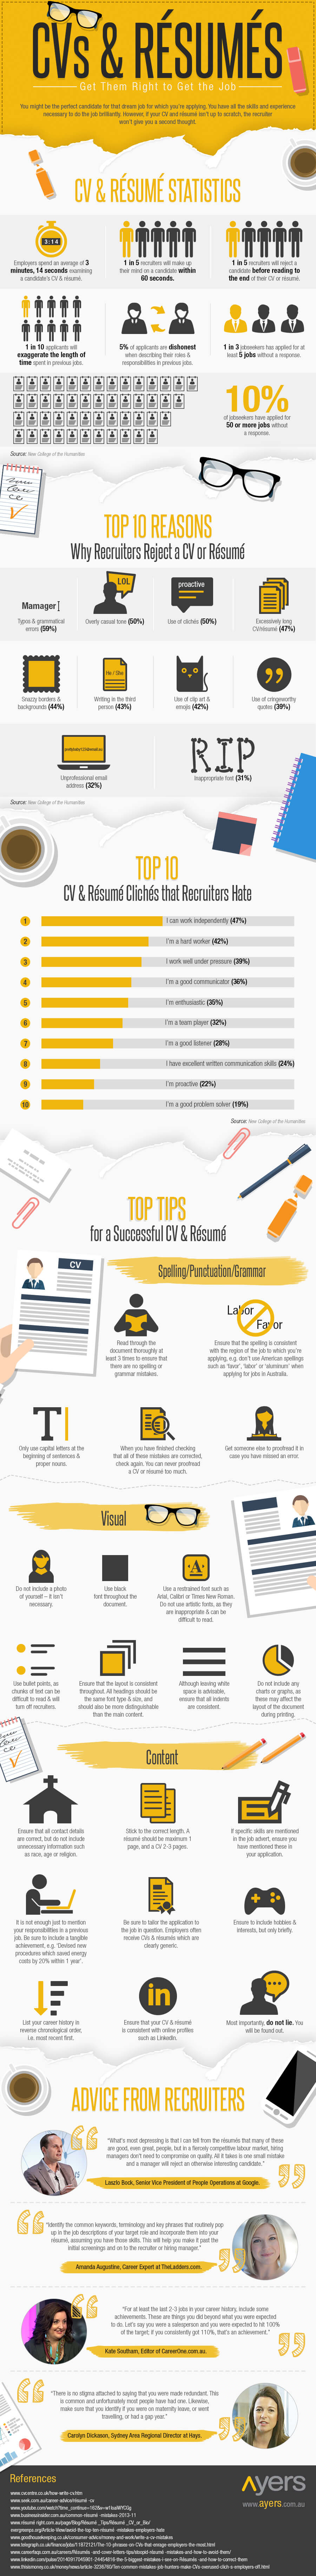 cvs  u0026 r u00e9sum u00e9s  get them right to get the job  infographic